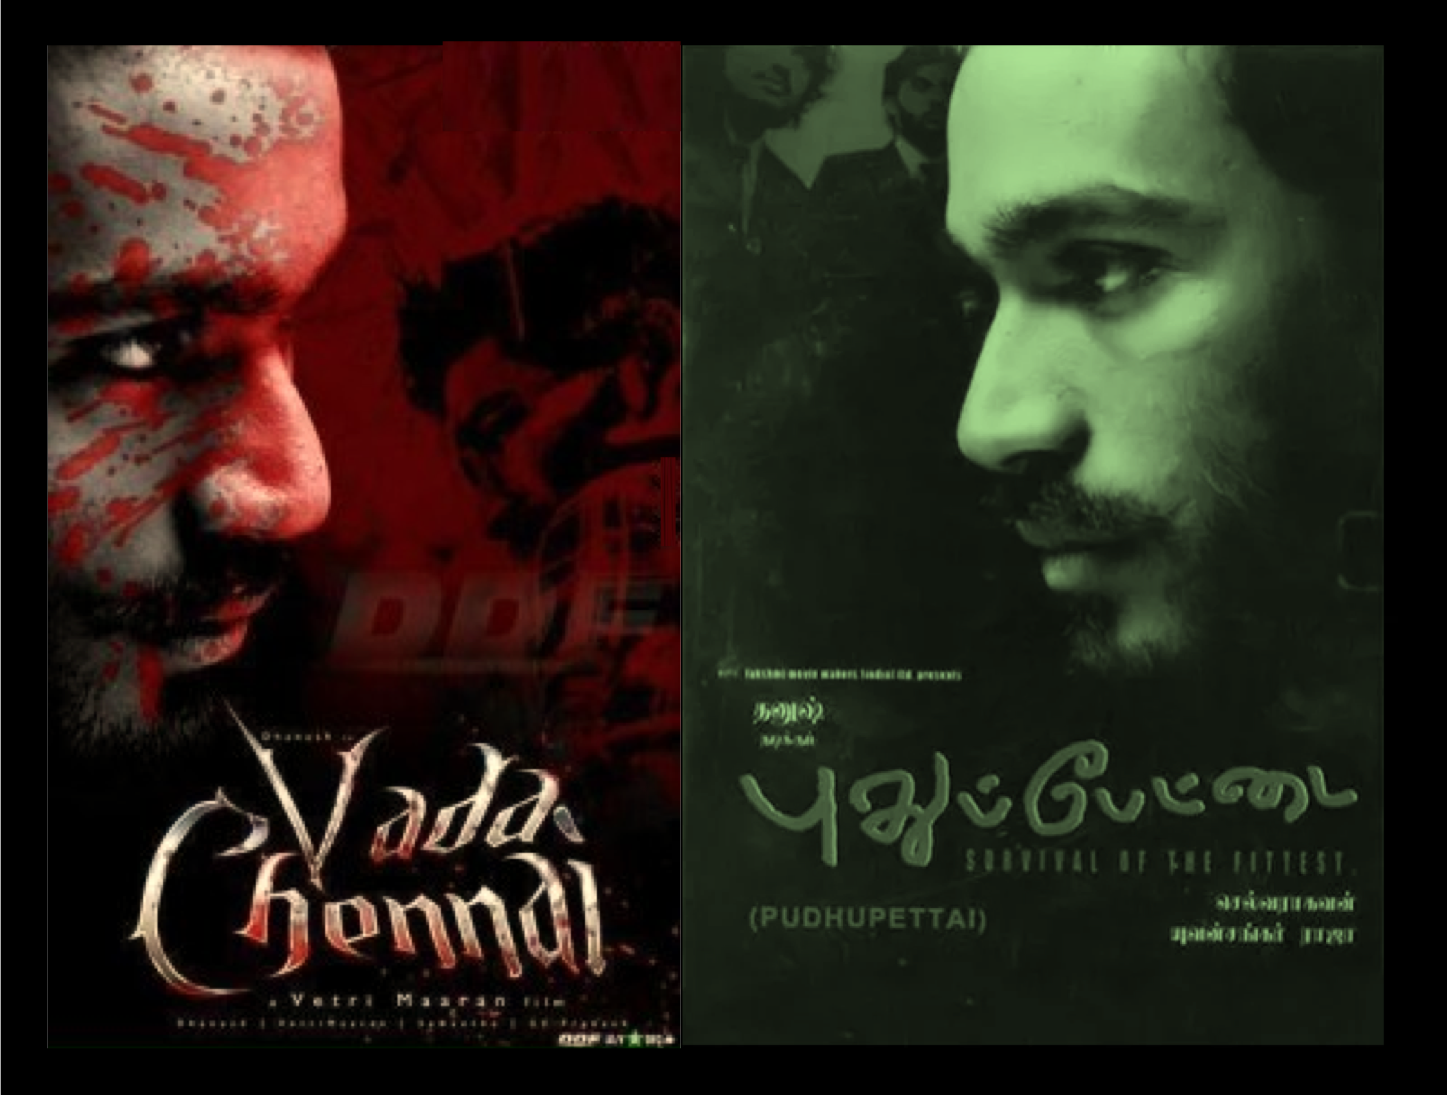 Pudhupettai — The Bible for all Vada Chennai movies